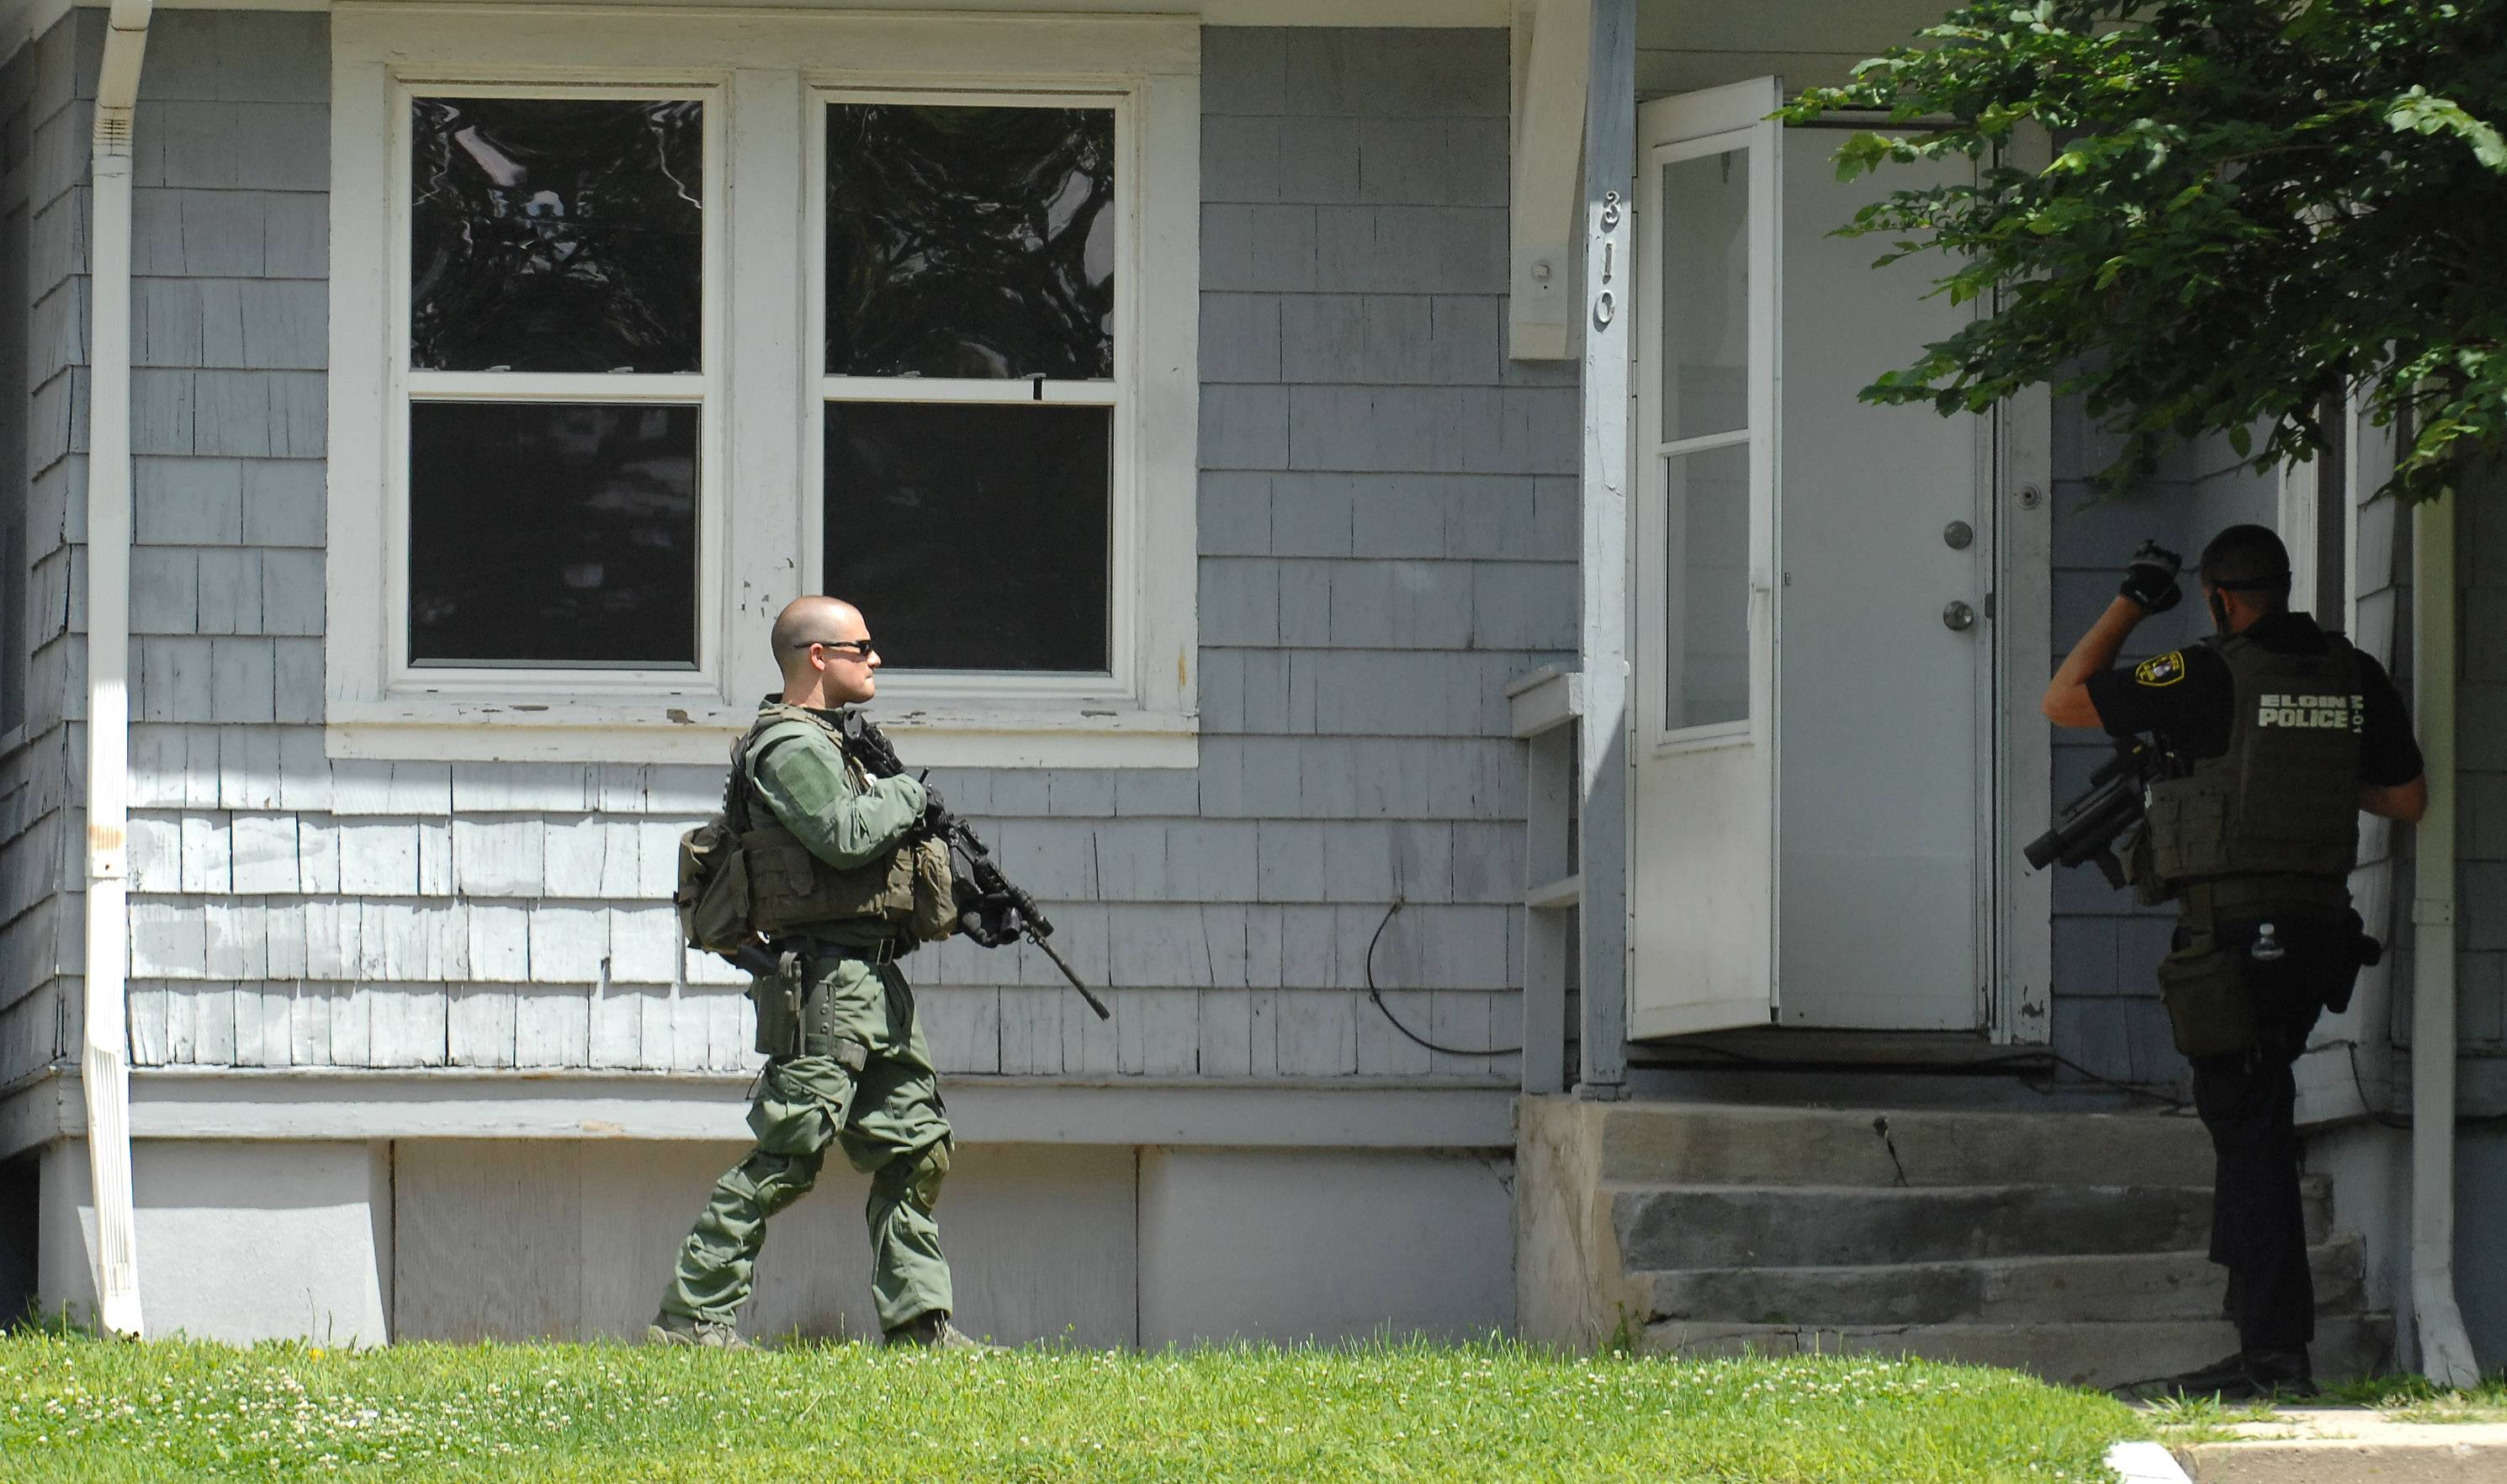 Elgin Police search a home off Seneca Street for Jesse Vega, a prisoner who escaped Elgin Mental Health Center authorities Wednesday morning.